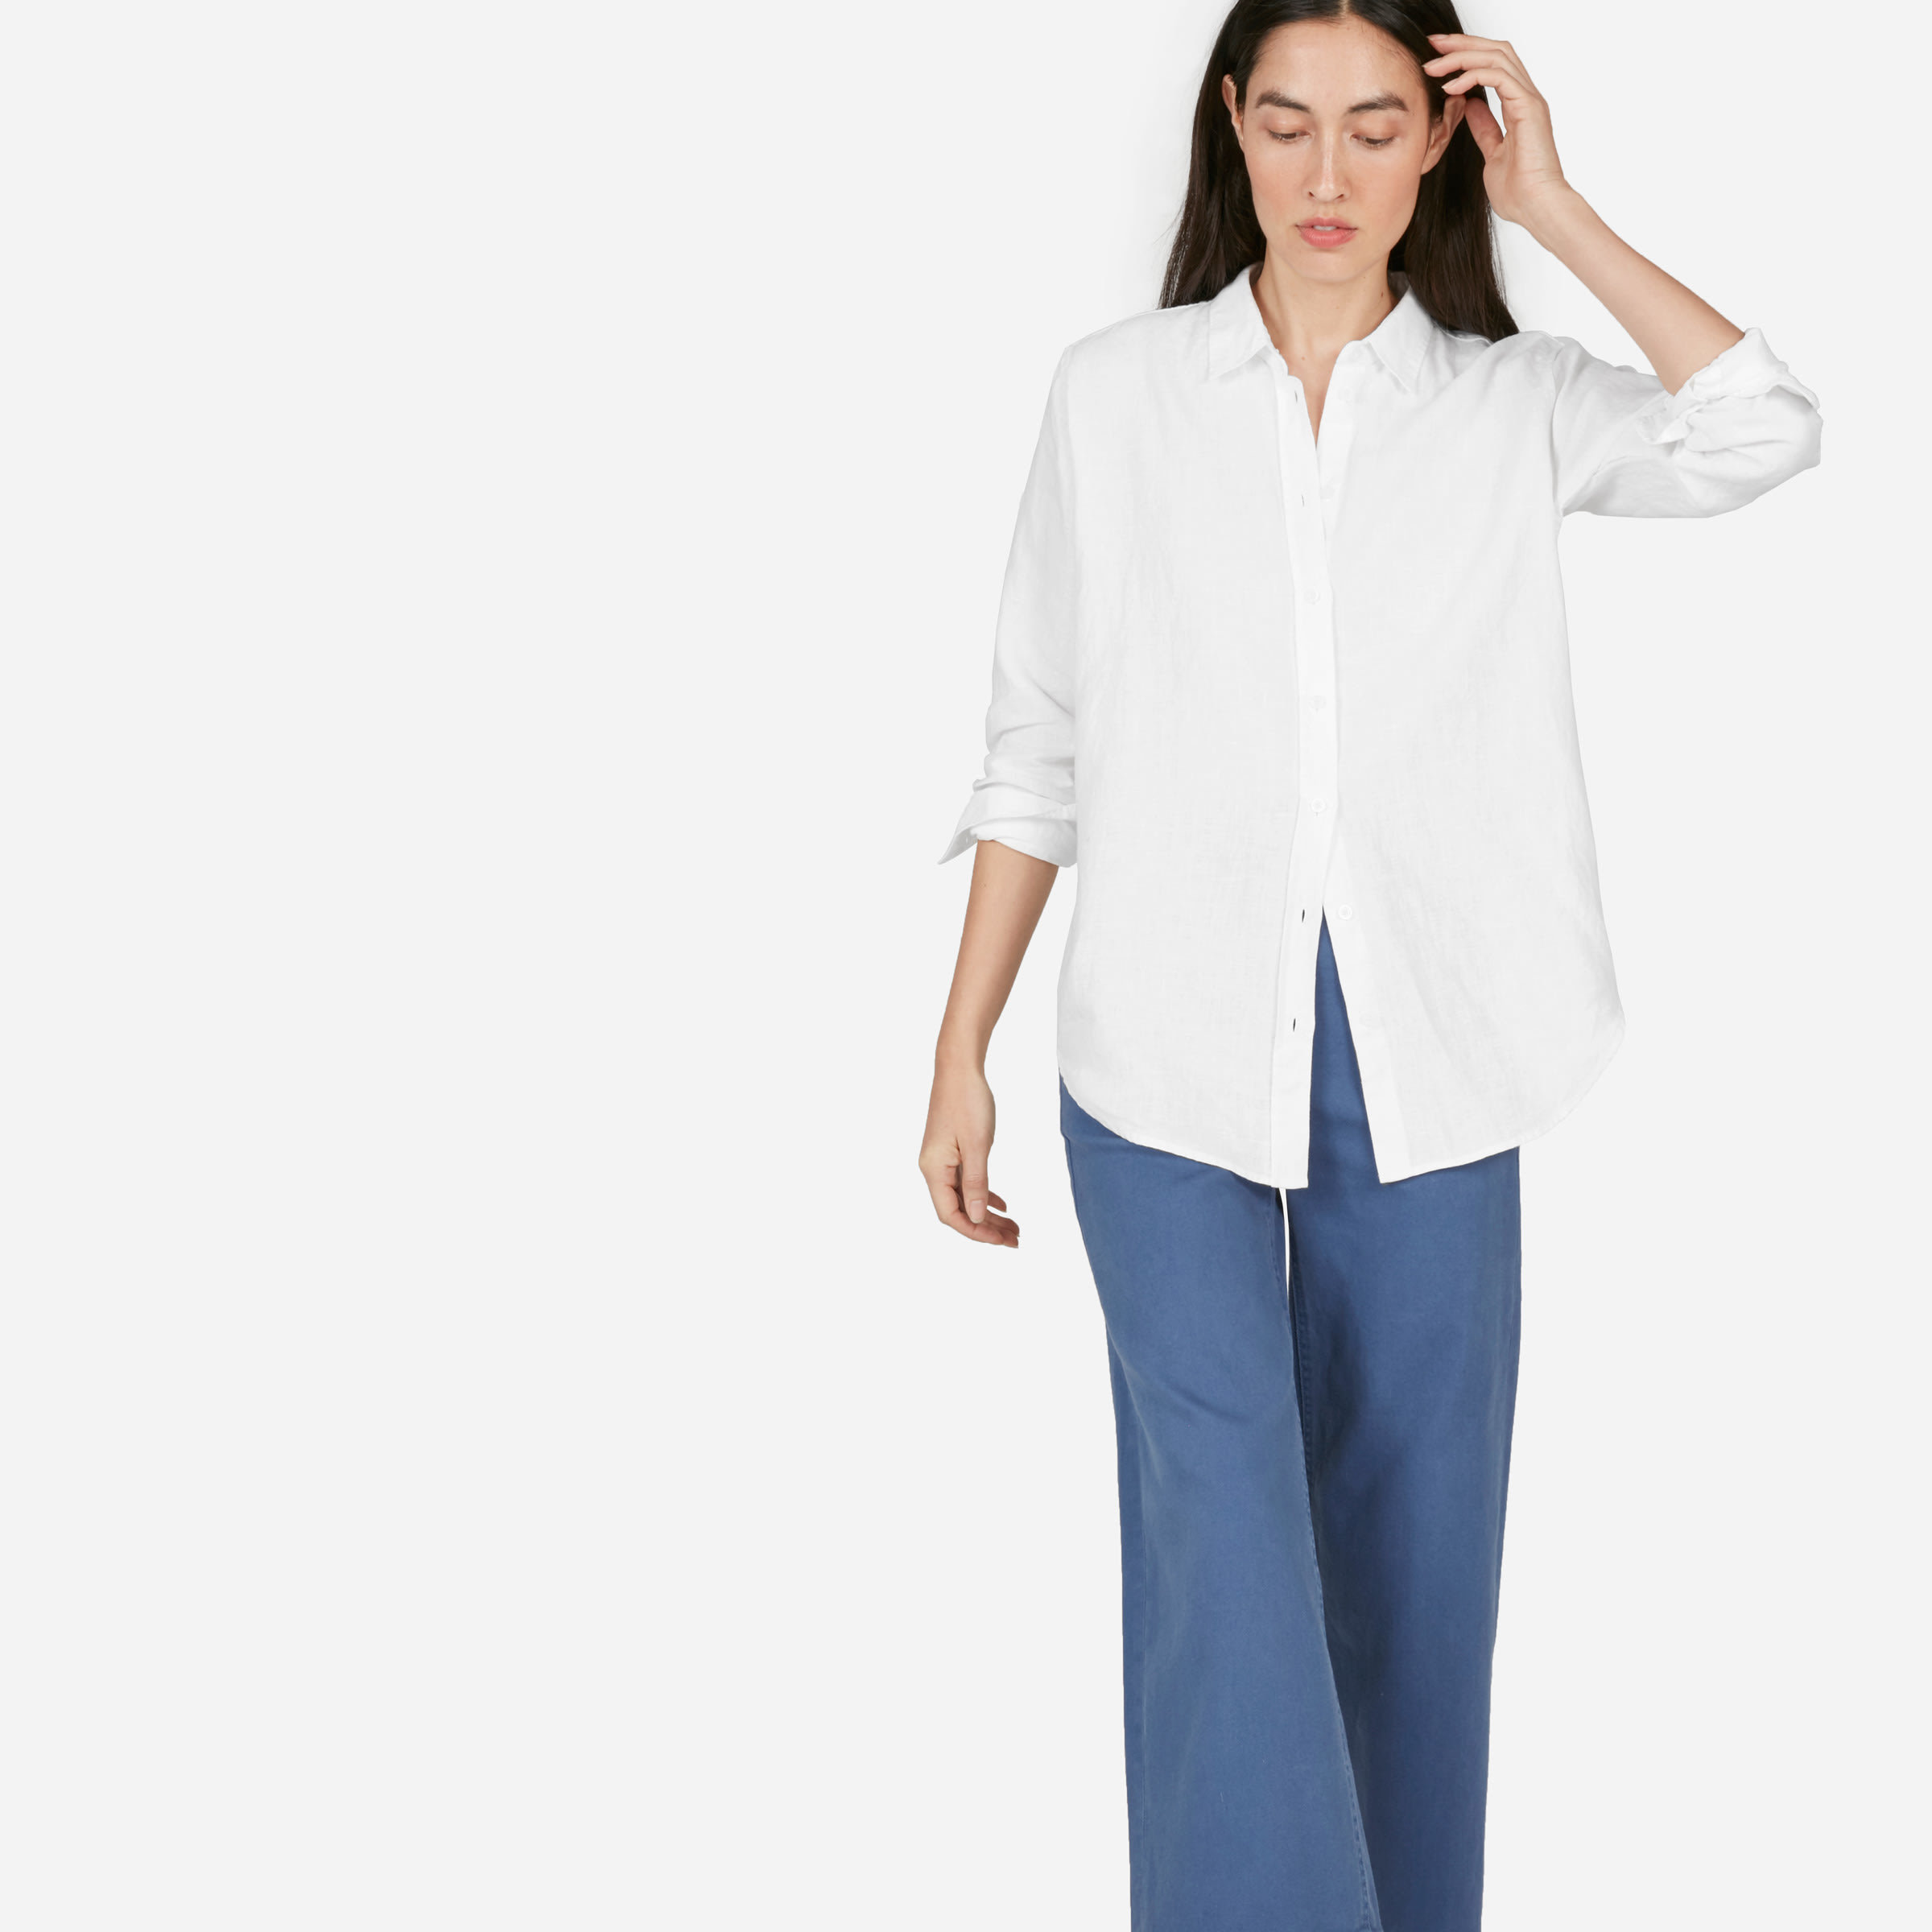 Everlane Linen Relaxed Shirt in white photo